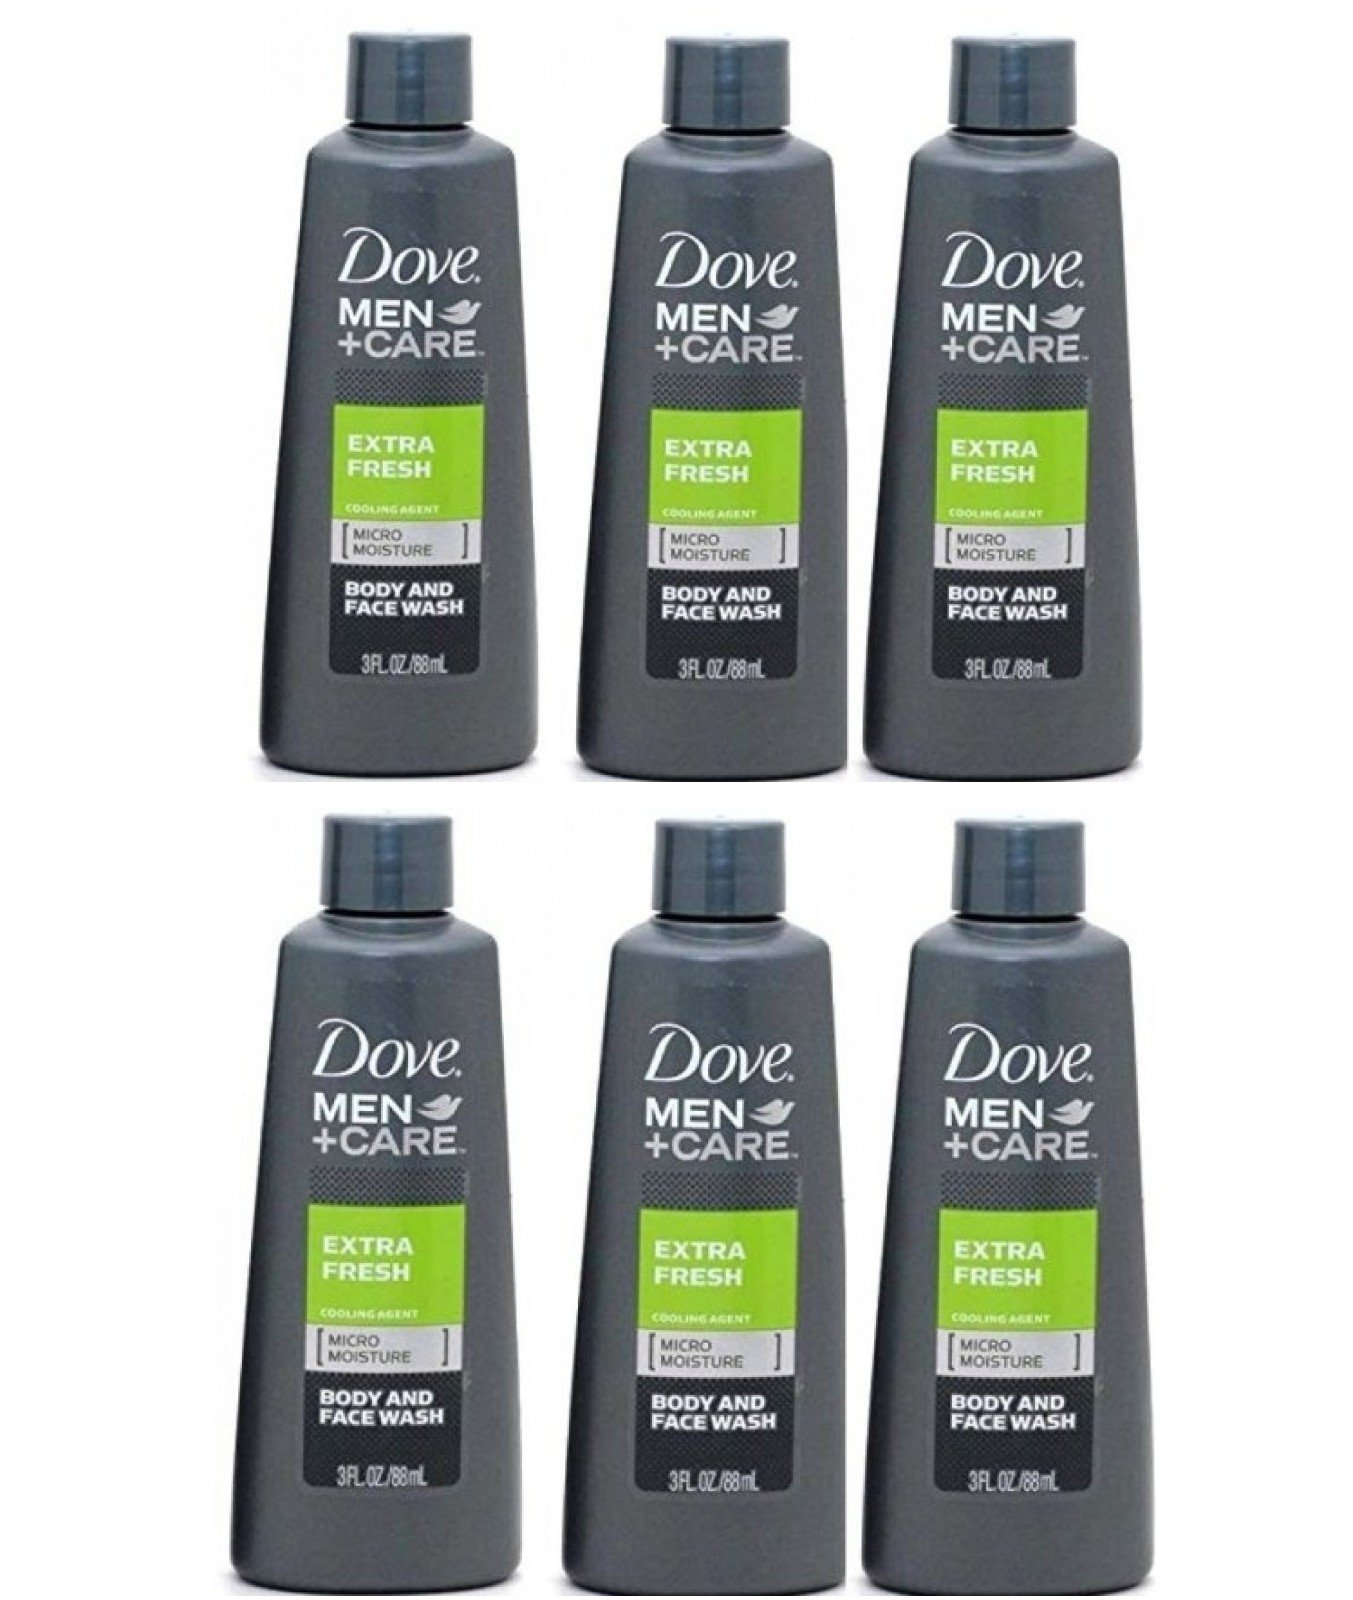 Dove Men Care Extra Fresh Body Wash 3 Ounce Travel Size (Pack of 6)